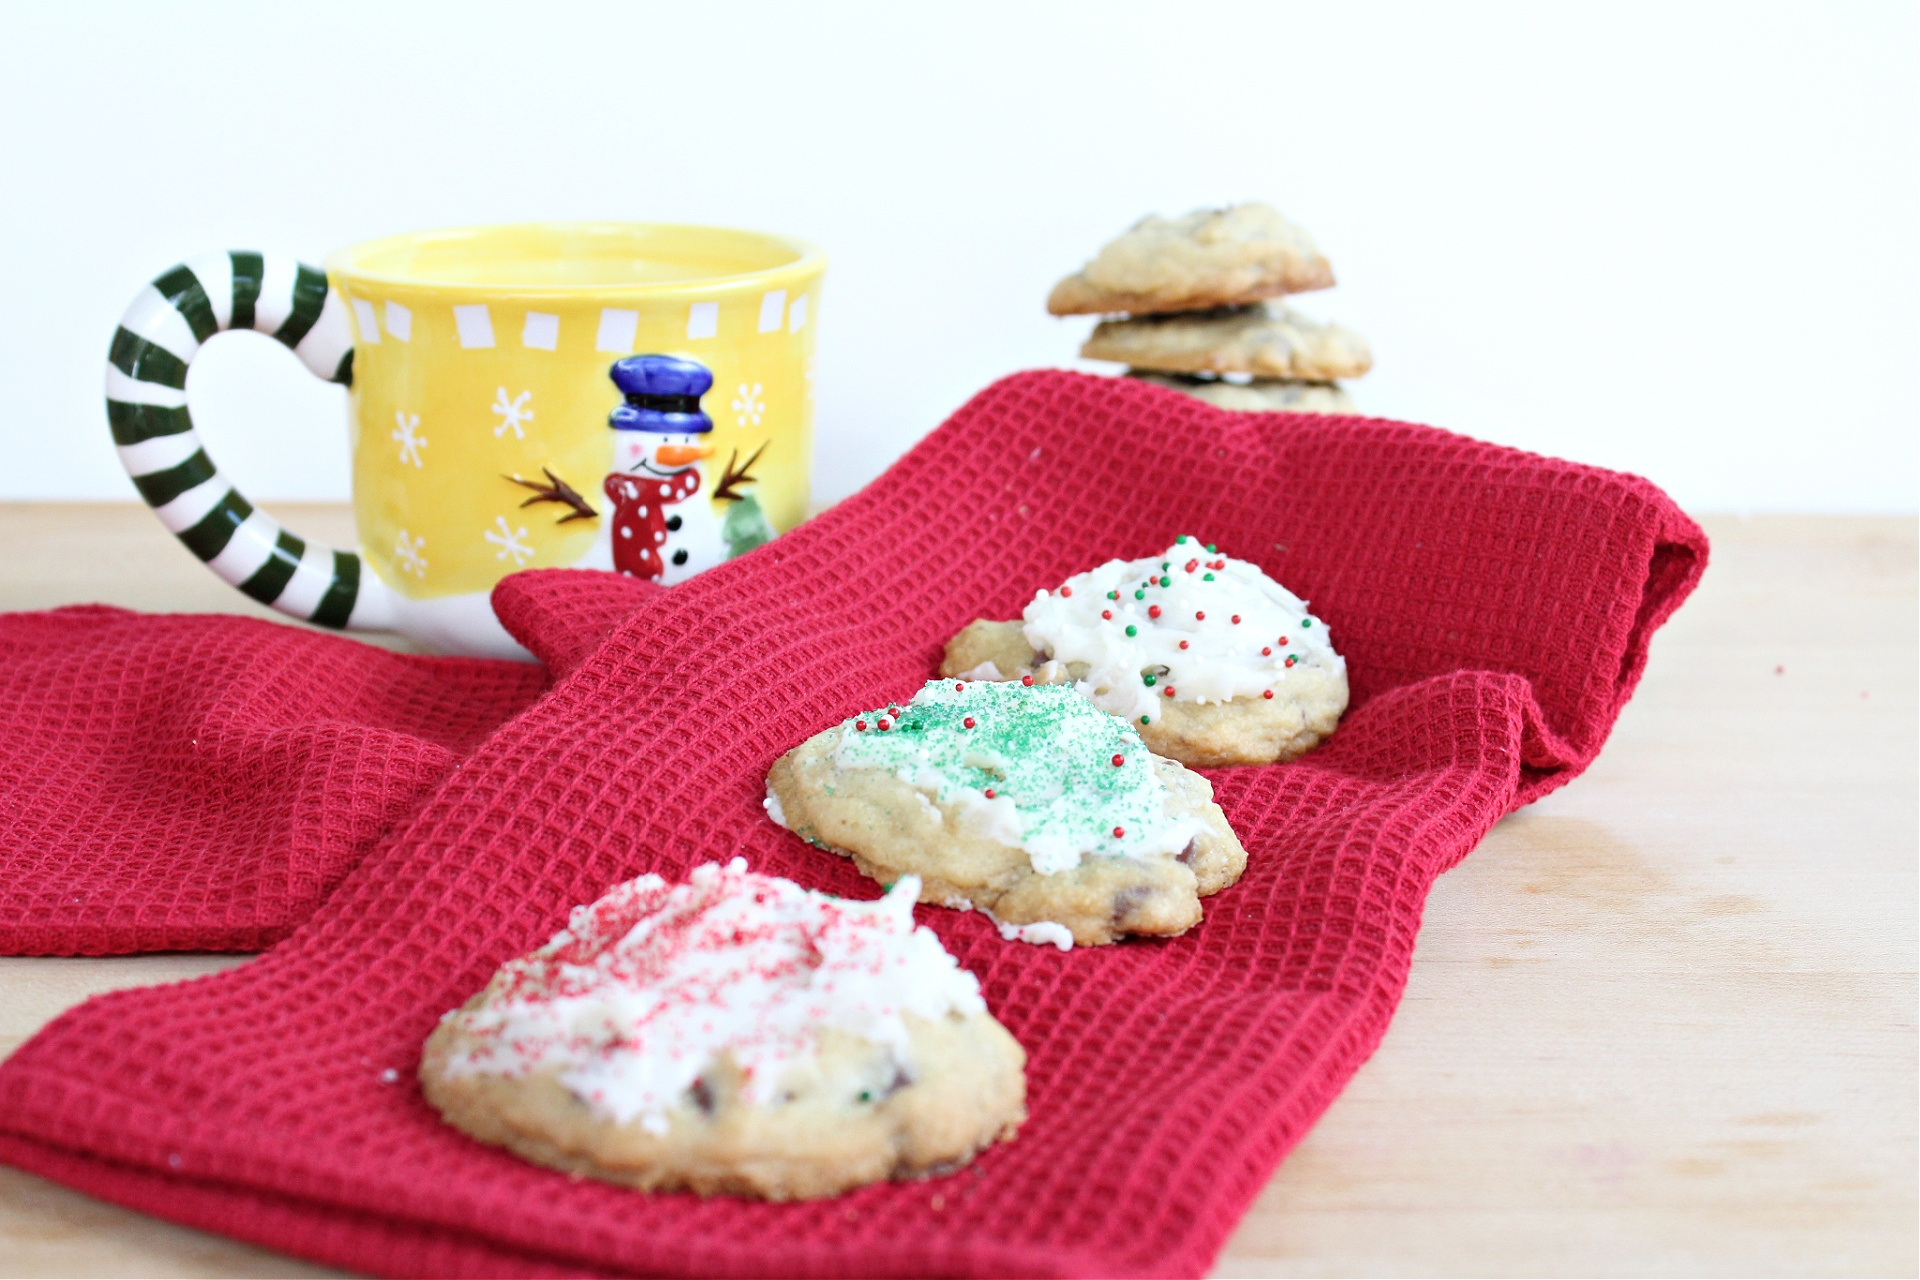 Easy Peppermint Chocolate Chip Cookies with Frosting